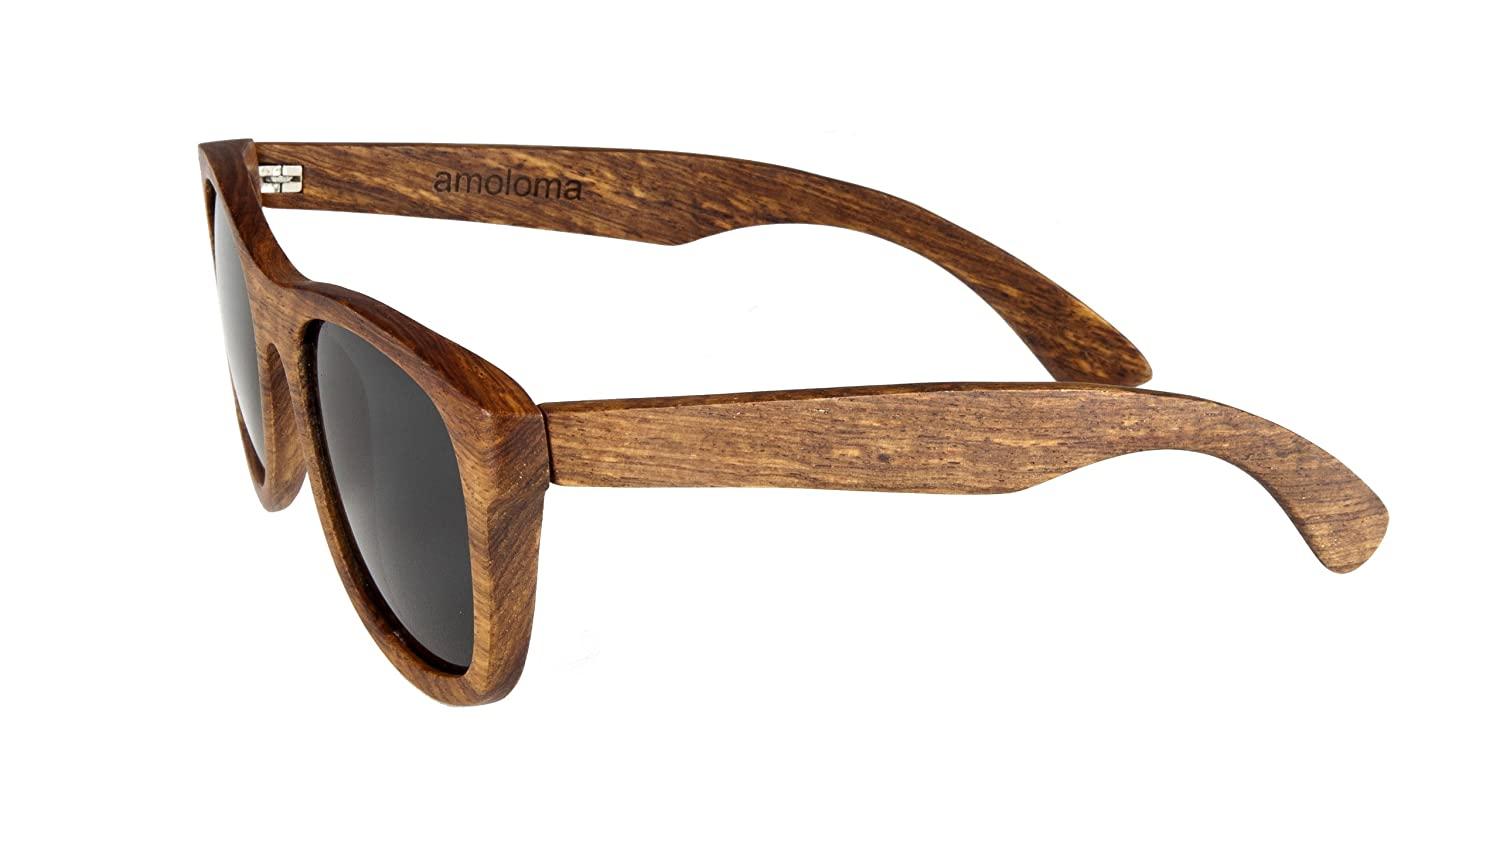 amazoncom pear wood sunglasses wayfarer design shoes - Wood Frame Glasses